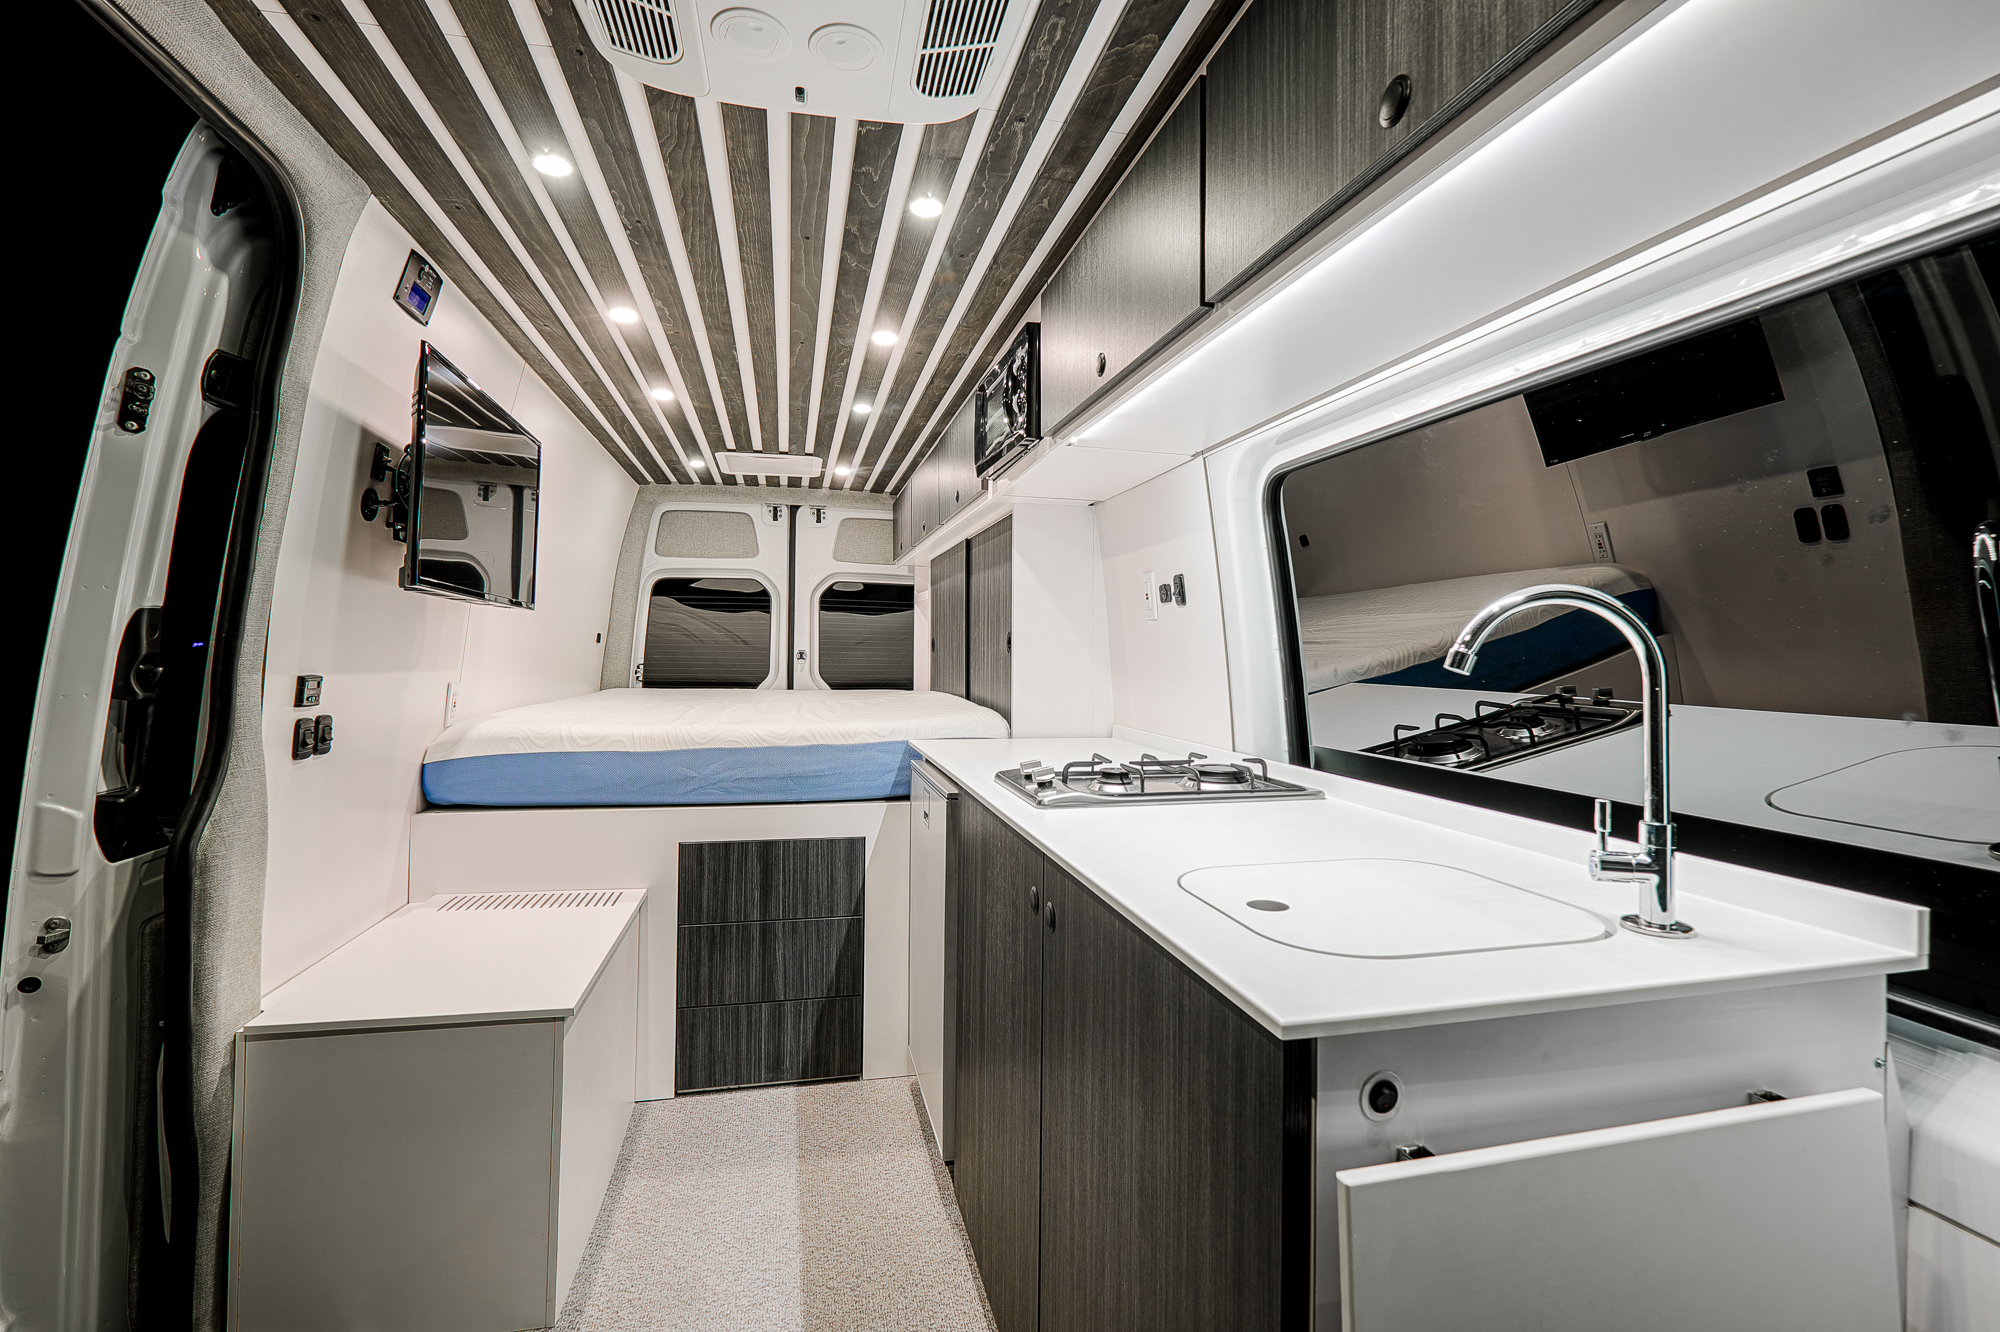 A Summit range and stainless steel sink sit inside of a CNC cut Corian countertop. A stainless steel Isotherm fridge is coupled with an additional freezer unit hidden inside of the box/bench/seat shown on the left. A wall-mounted LED TV along with flush-mounted Pushloc drawers under the bed supply extra style and comfort while on the road for long weekends.